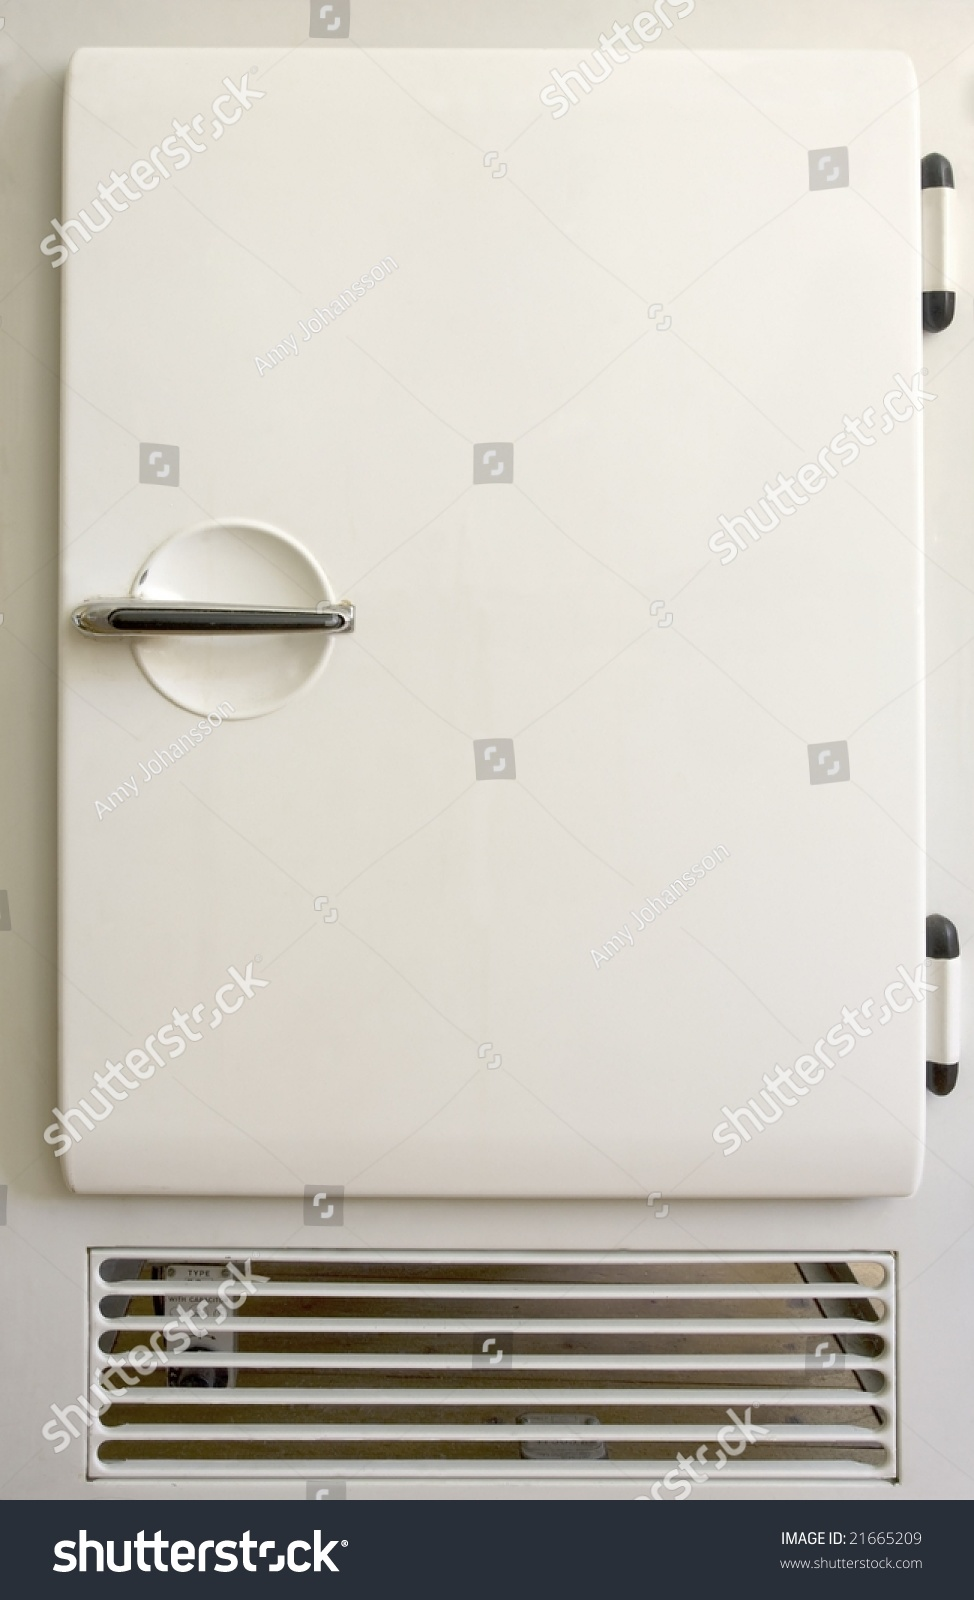 Save to a lightbox & Old Fashioned Fridge Door. Stock Photo 21665209 : Shutterstock Pezcame.Com